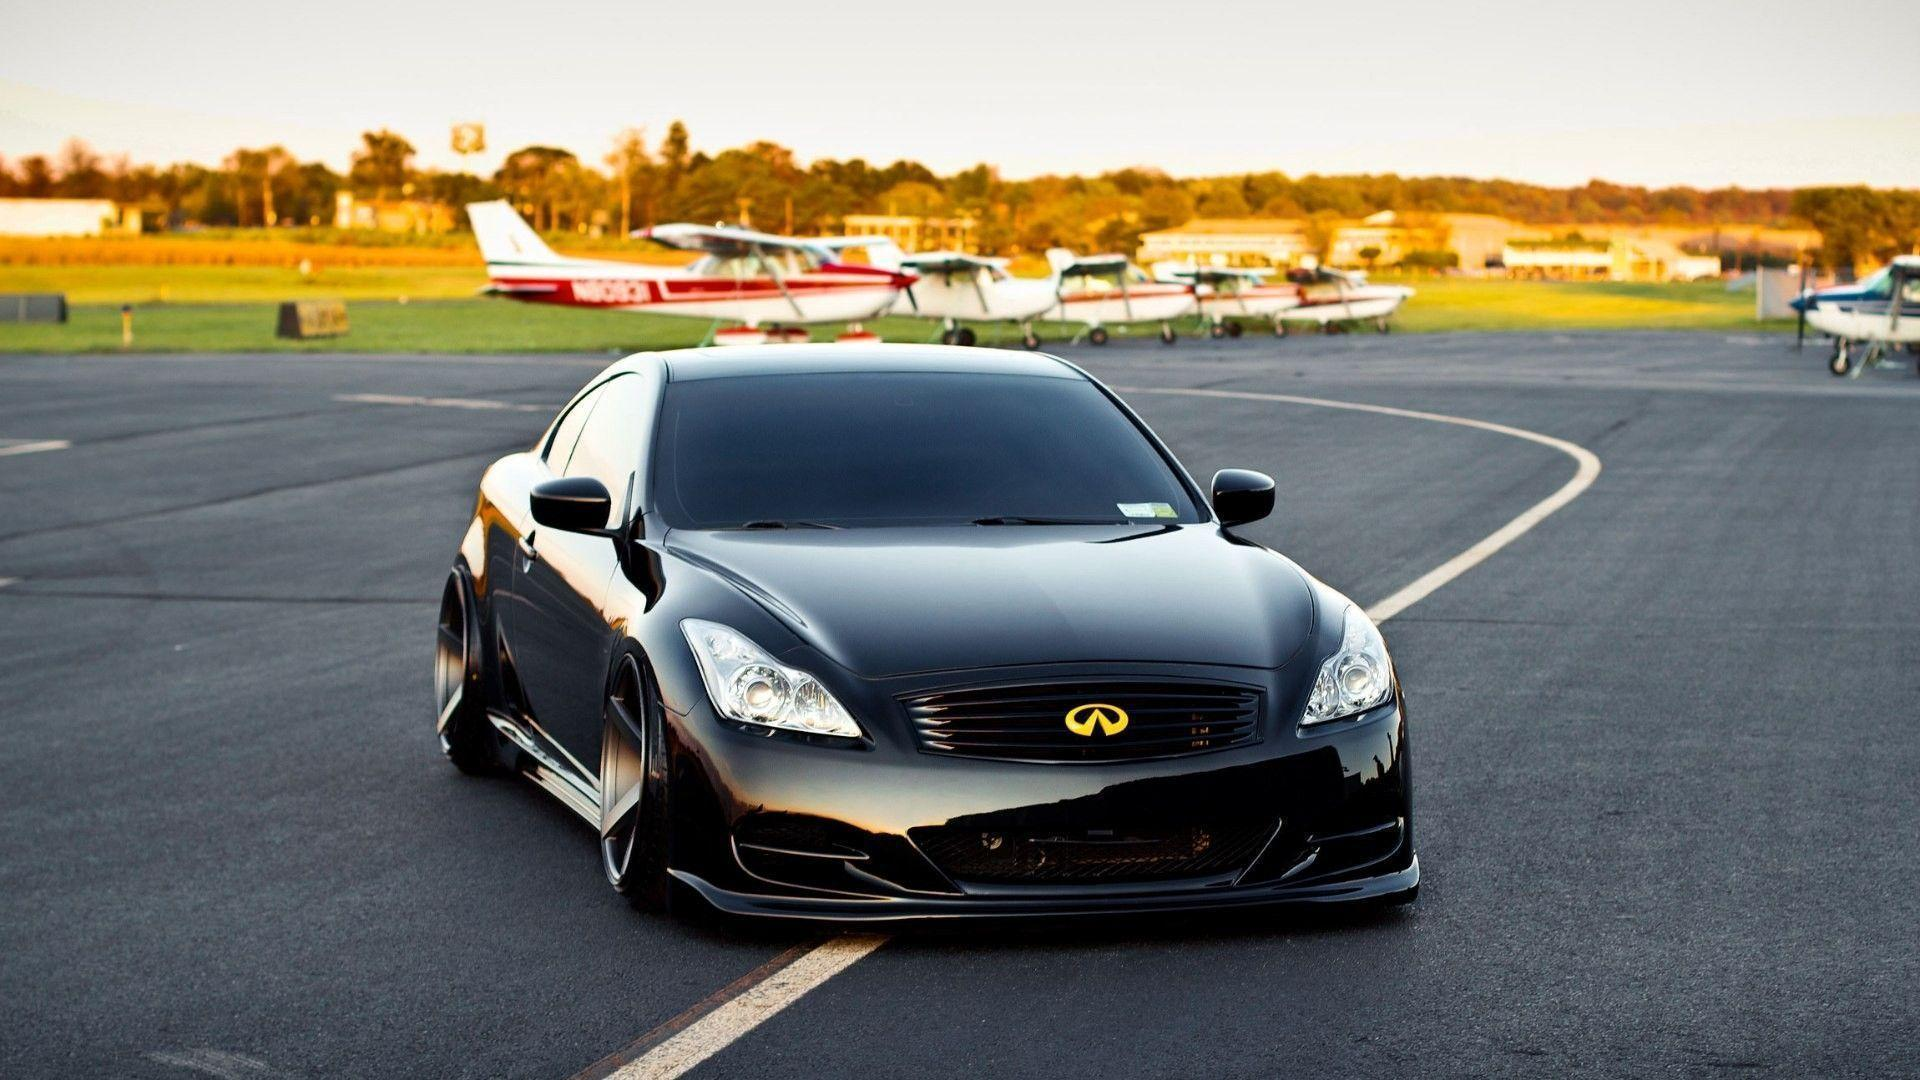 Infiniti G35 Coupe Wallpapers 1920x1080